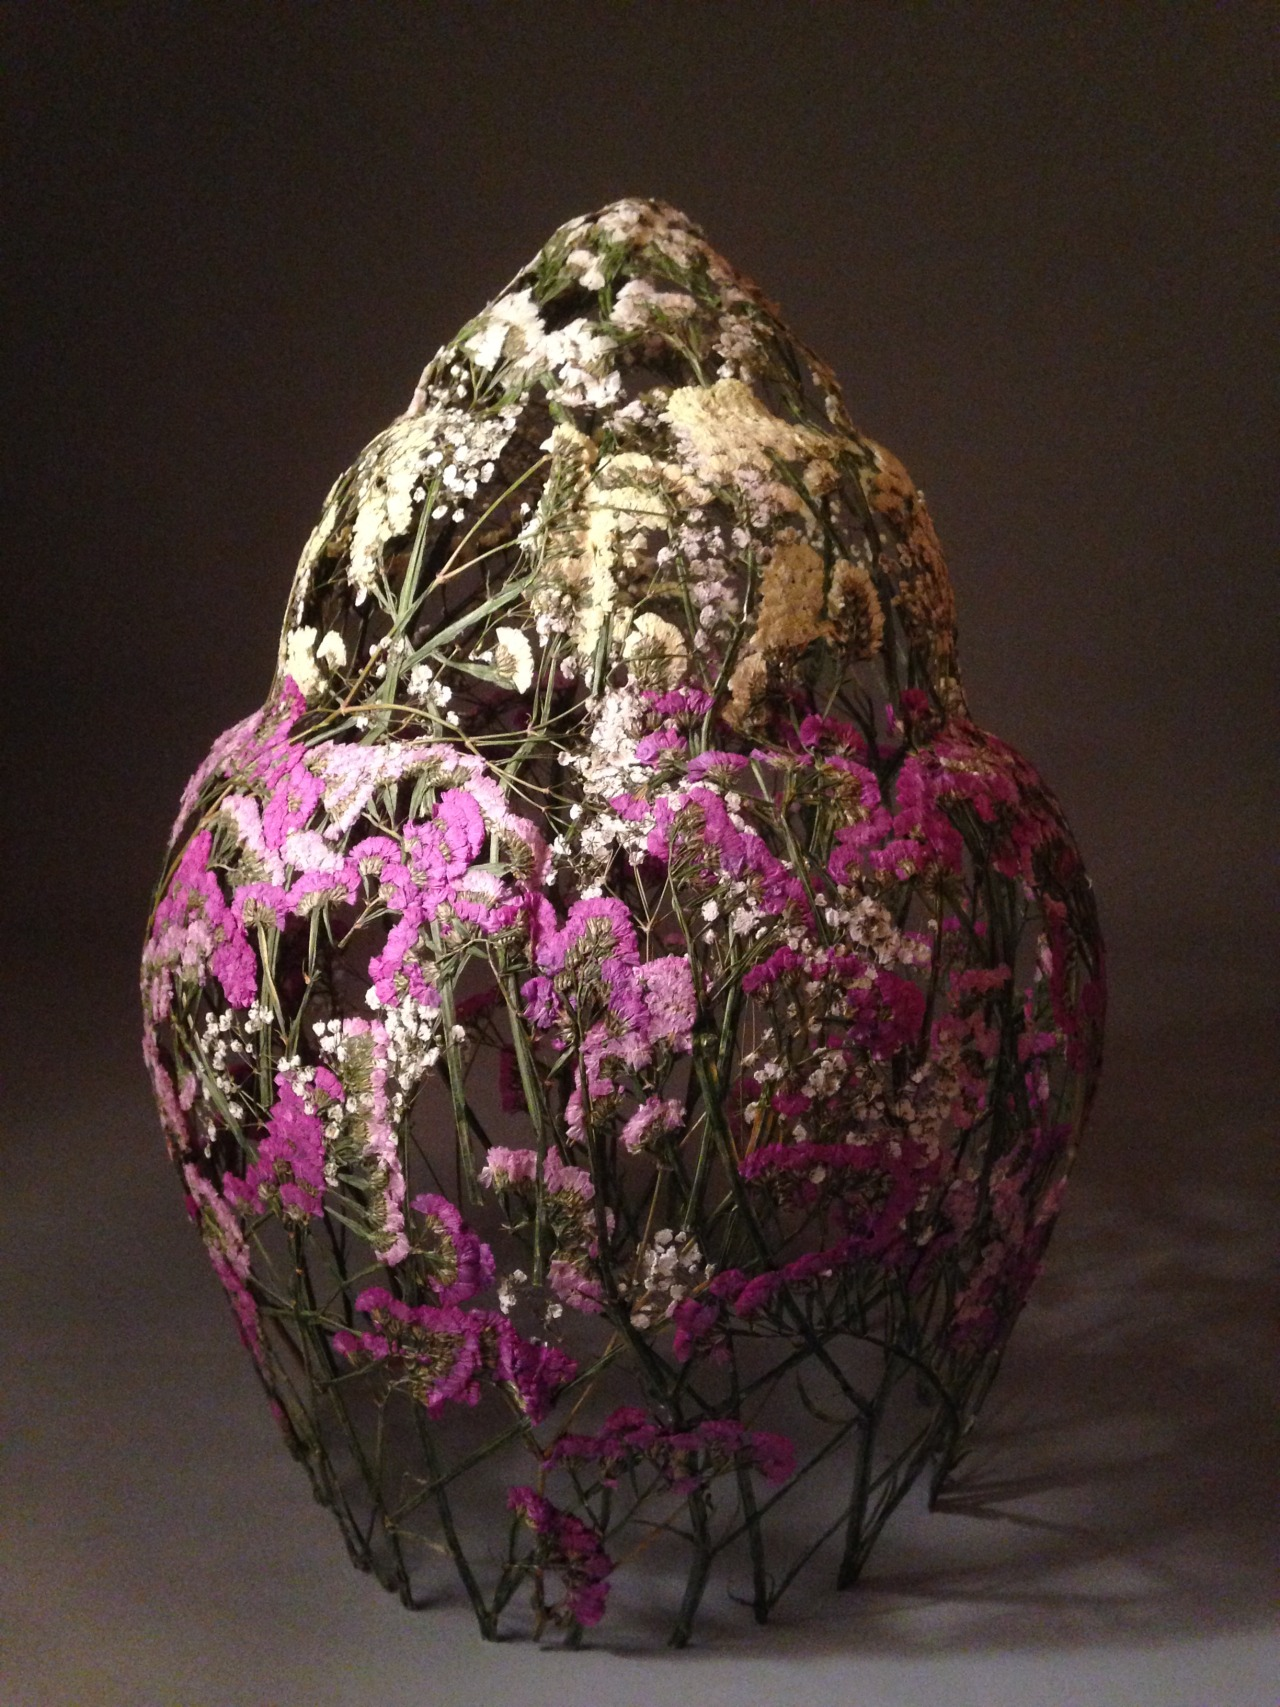 Ignacio Canales Aracil – art of flower sculptures2